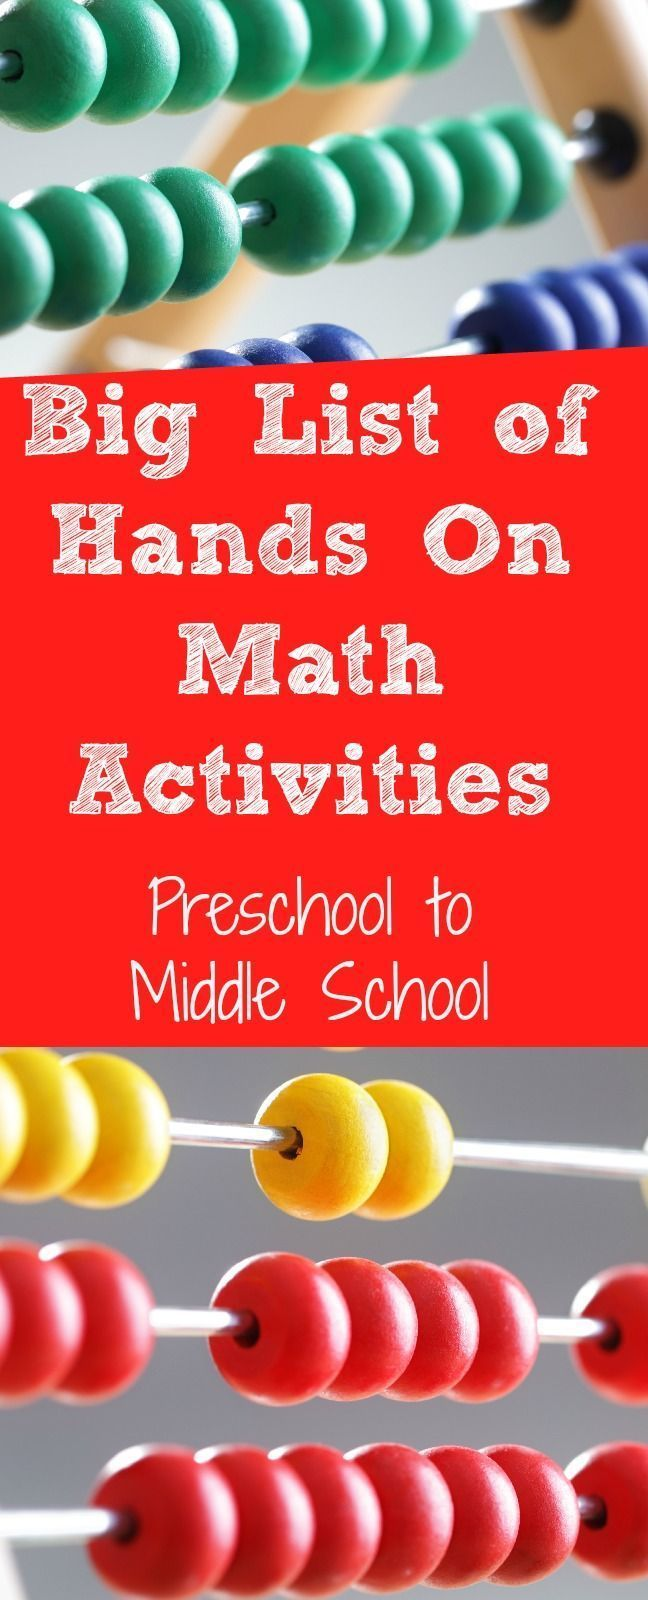 Hands On Math Activities for kids from preschool to elementary school to middle school. | Creekside Learning